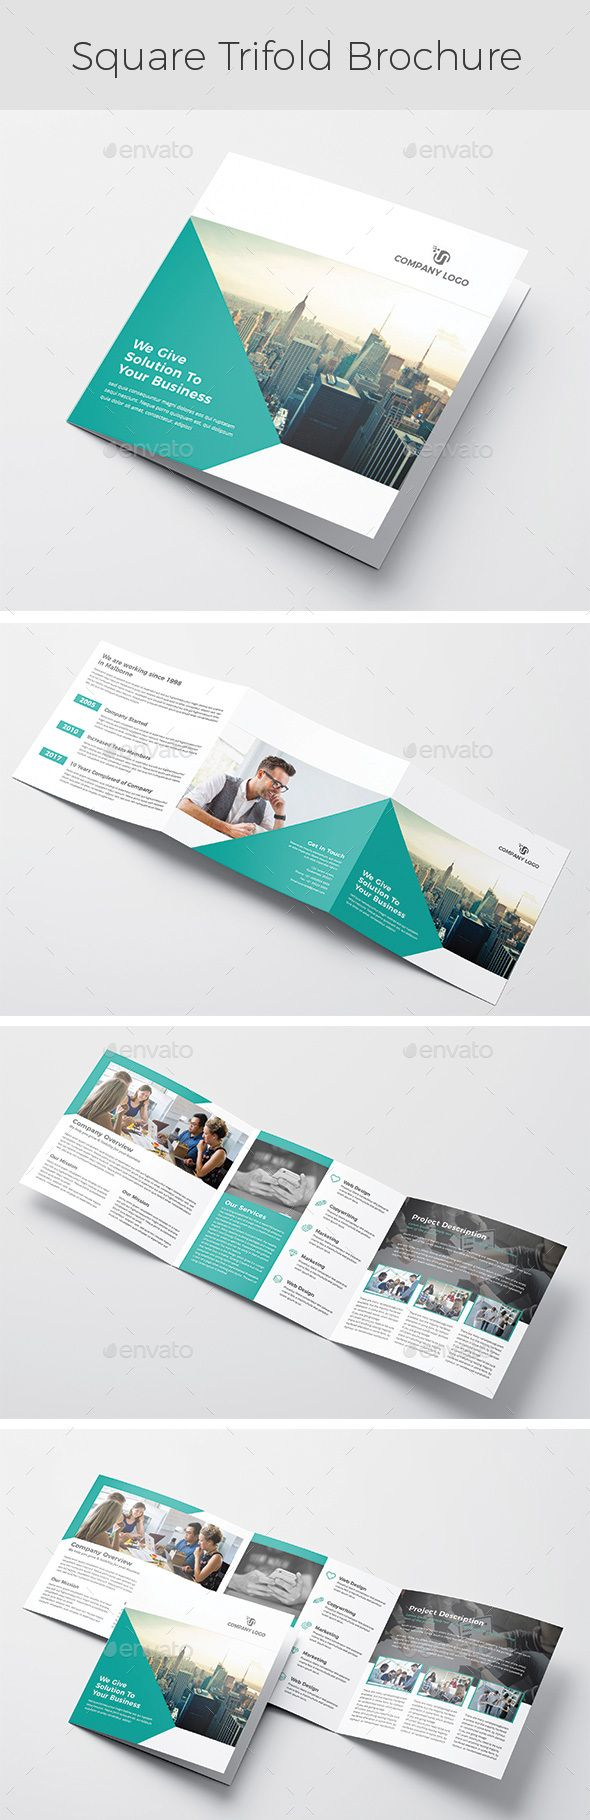 Square Trifold #Brochure - Brochures Print Templates | indesign ...